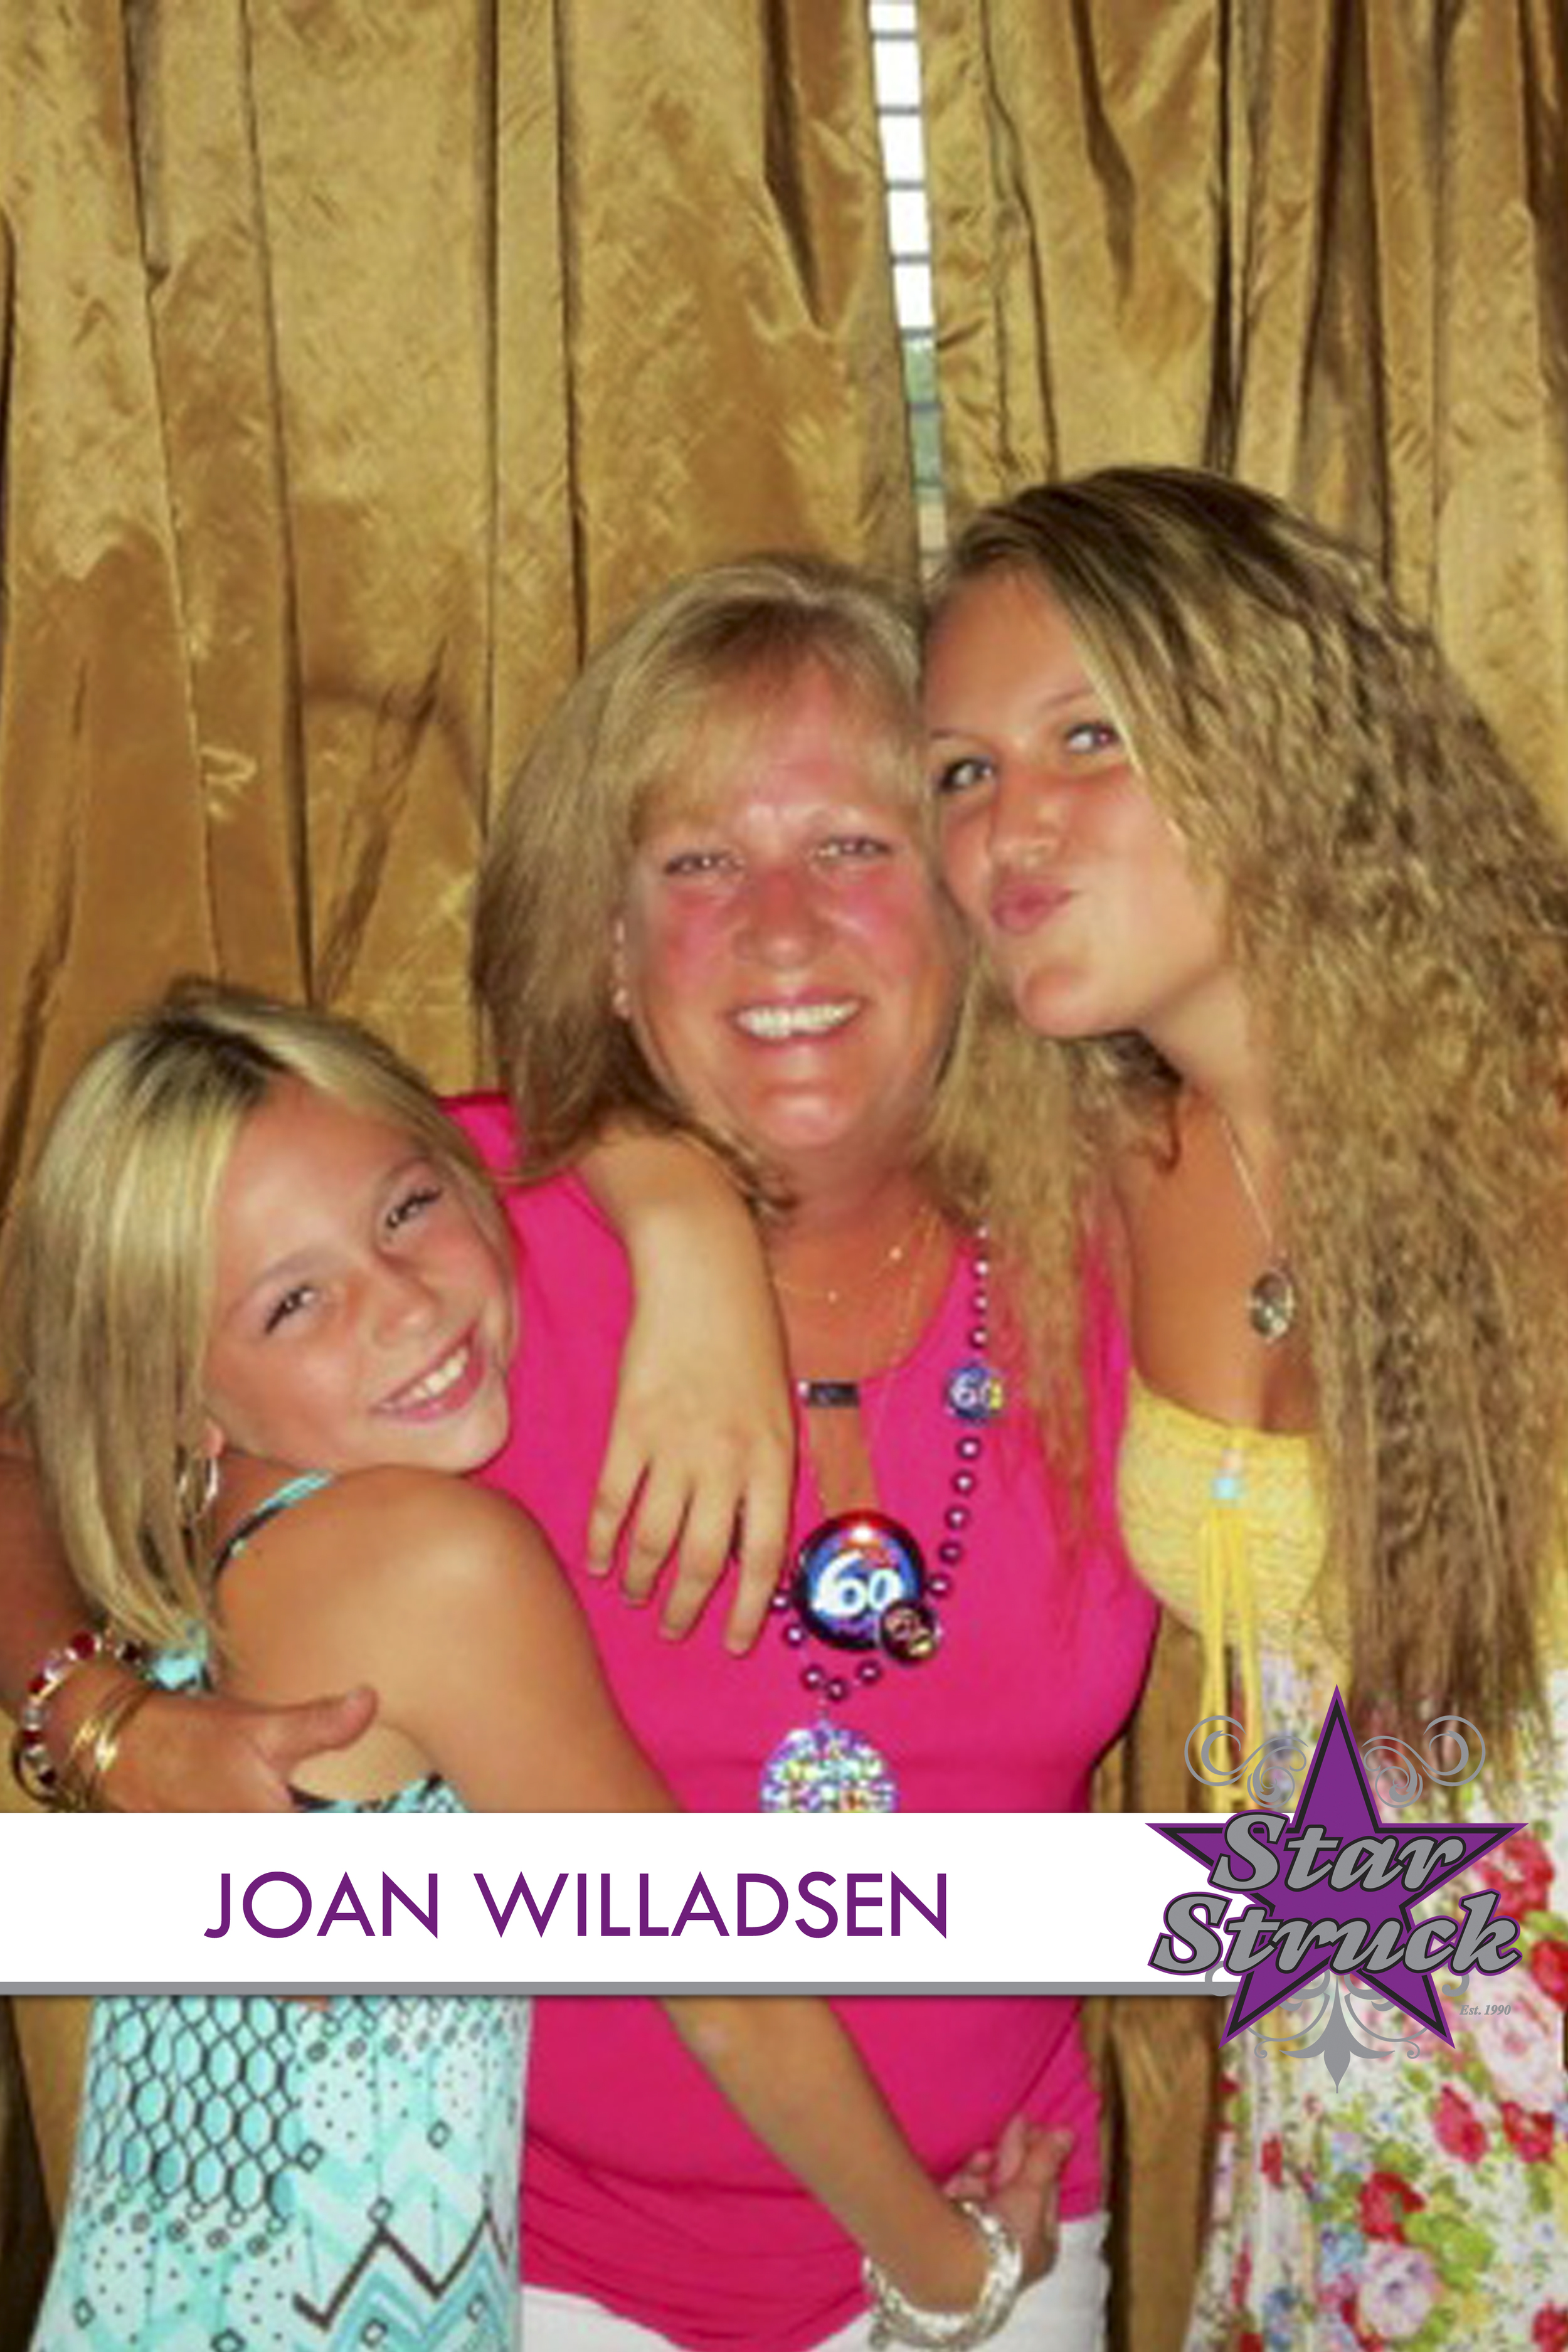 """JOAN WILLADSEN   Joan Willadsen, """"AKA"""" Grammy J, has been the studio's biggest supporter right from the start. Though she's not directly involved with the dance aspect of the business, she keeps things running smoothly by handling all the paper work. Joan is the official book keeper & den mom to the entire staff, not to mention Miss Gail's personal therapist. Joan has been an employee at JP Morgan Chase for the past 37 years. Her family is what matters most and having both her daughters Gail and Erica follow their dreams is all any Mom could ask for. She is filled with pride and loves the part she plays at Star Struck."""